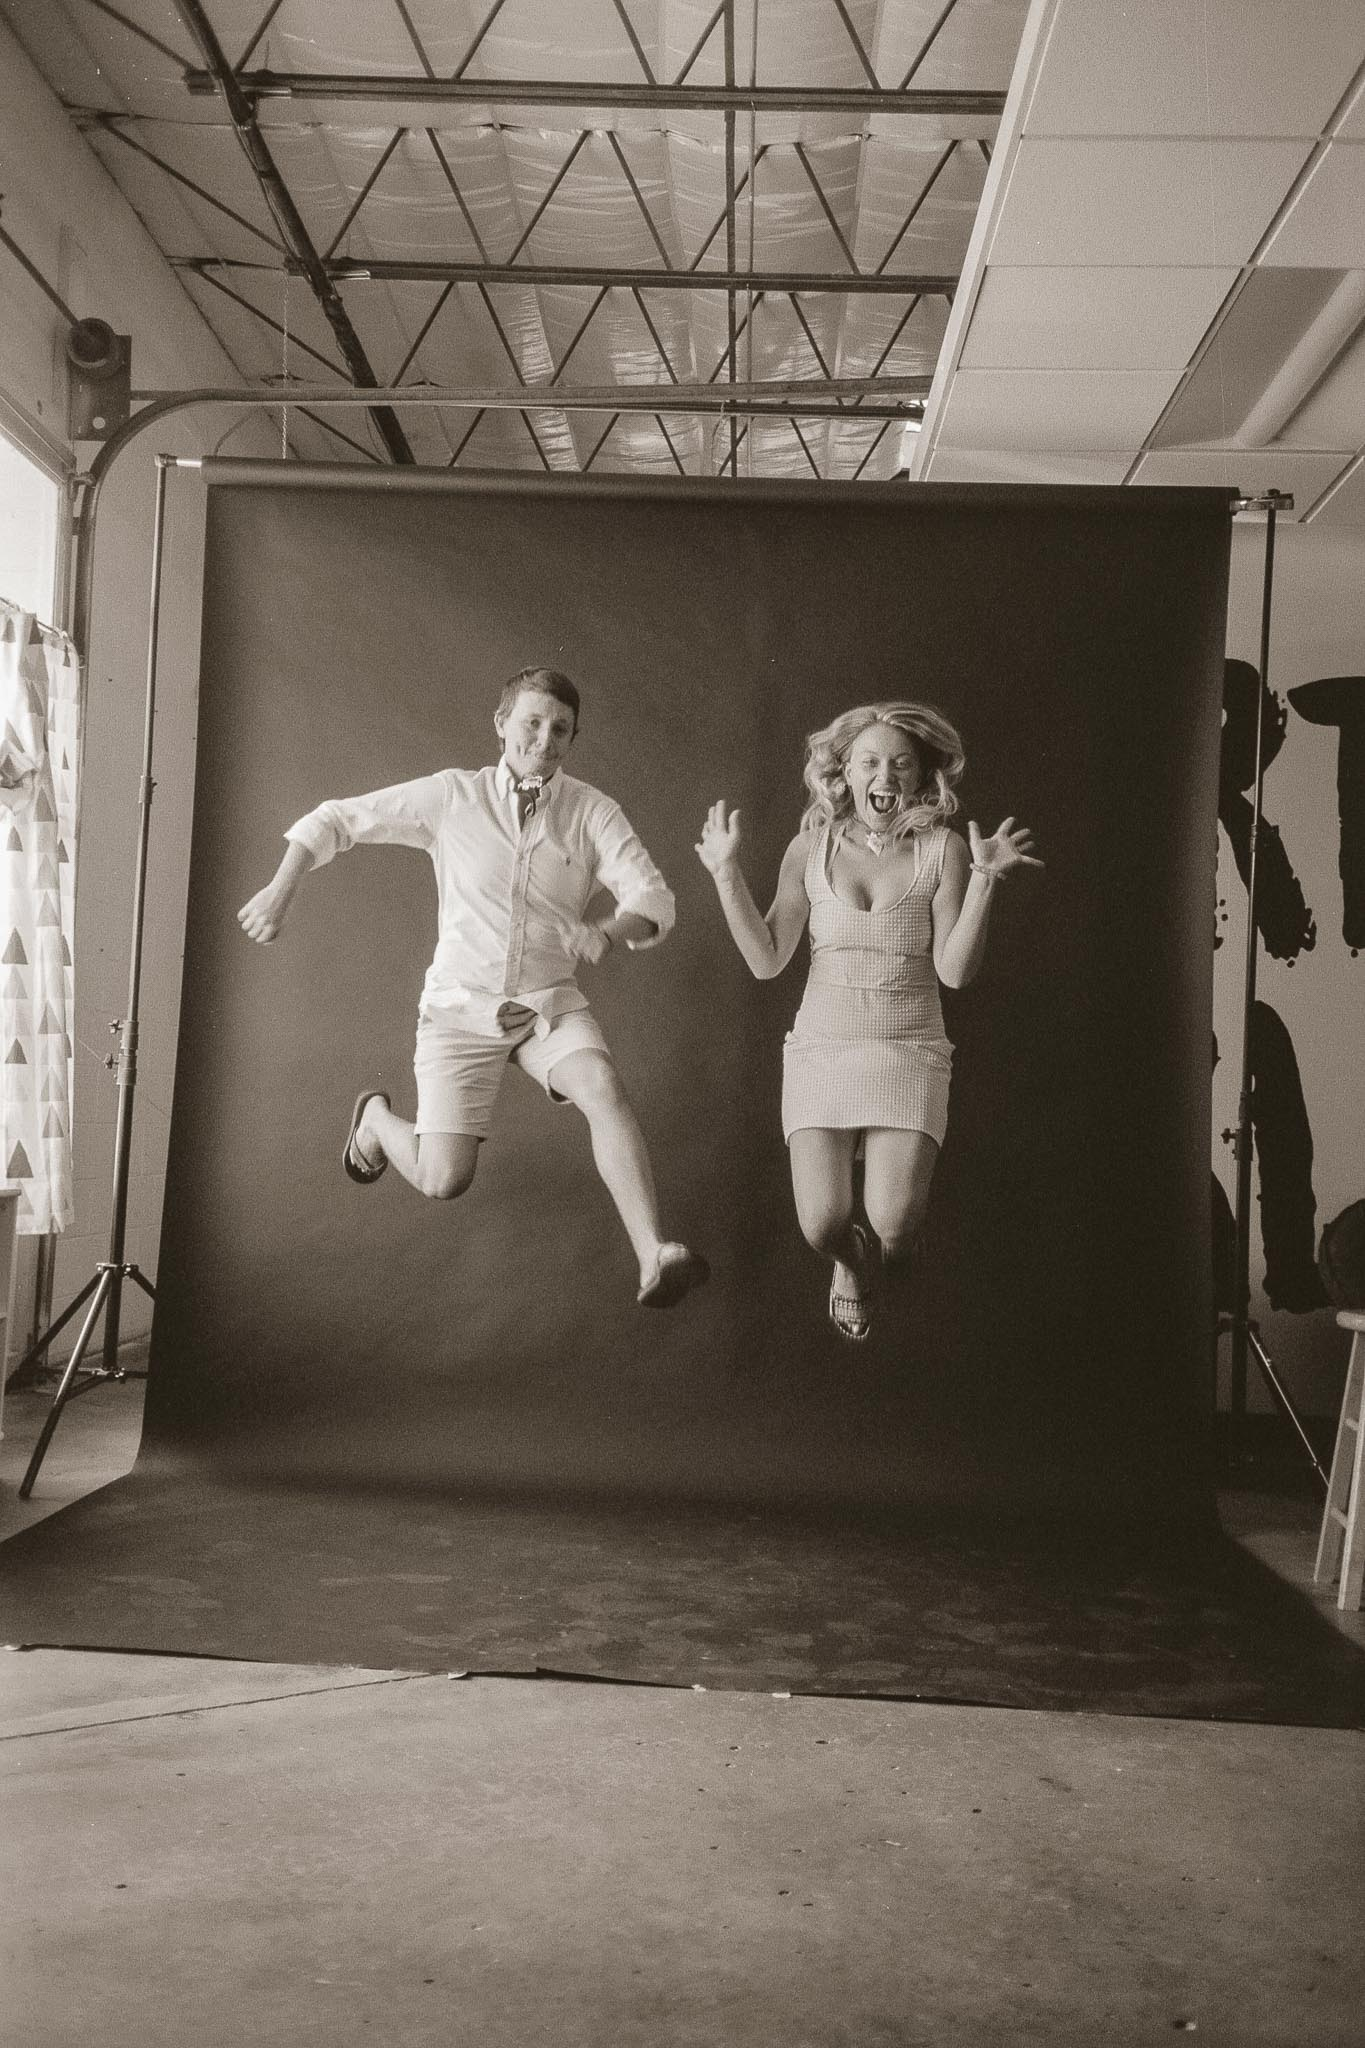 Guy and girl jumping in front of a studio backdrop